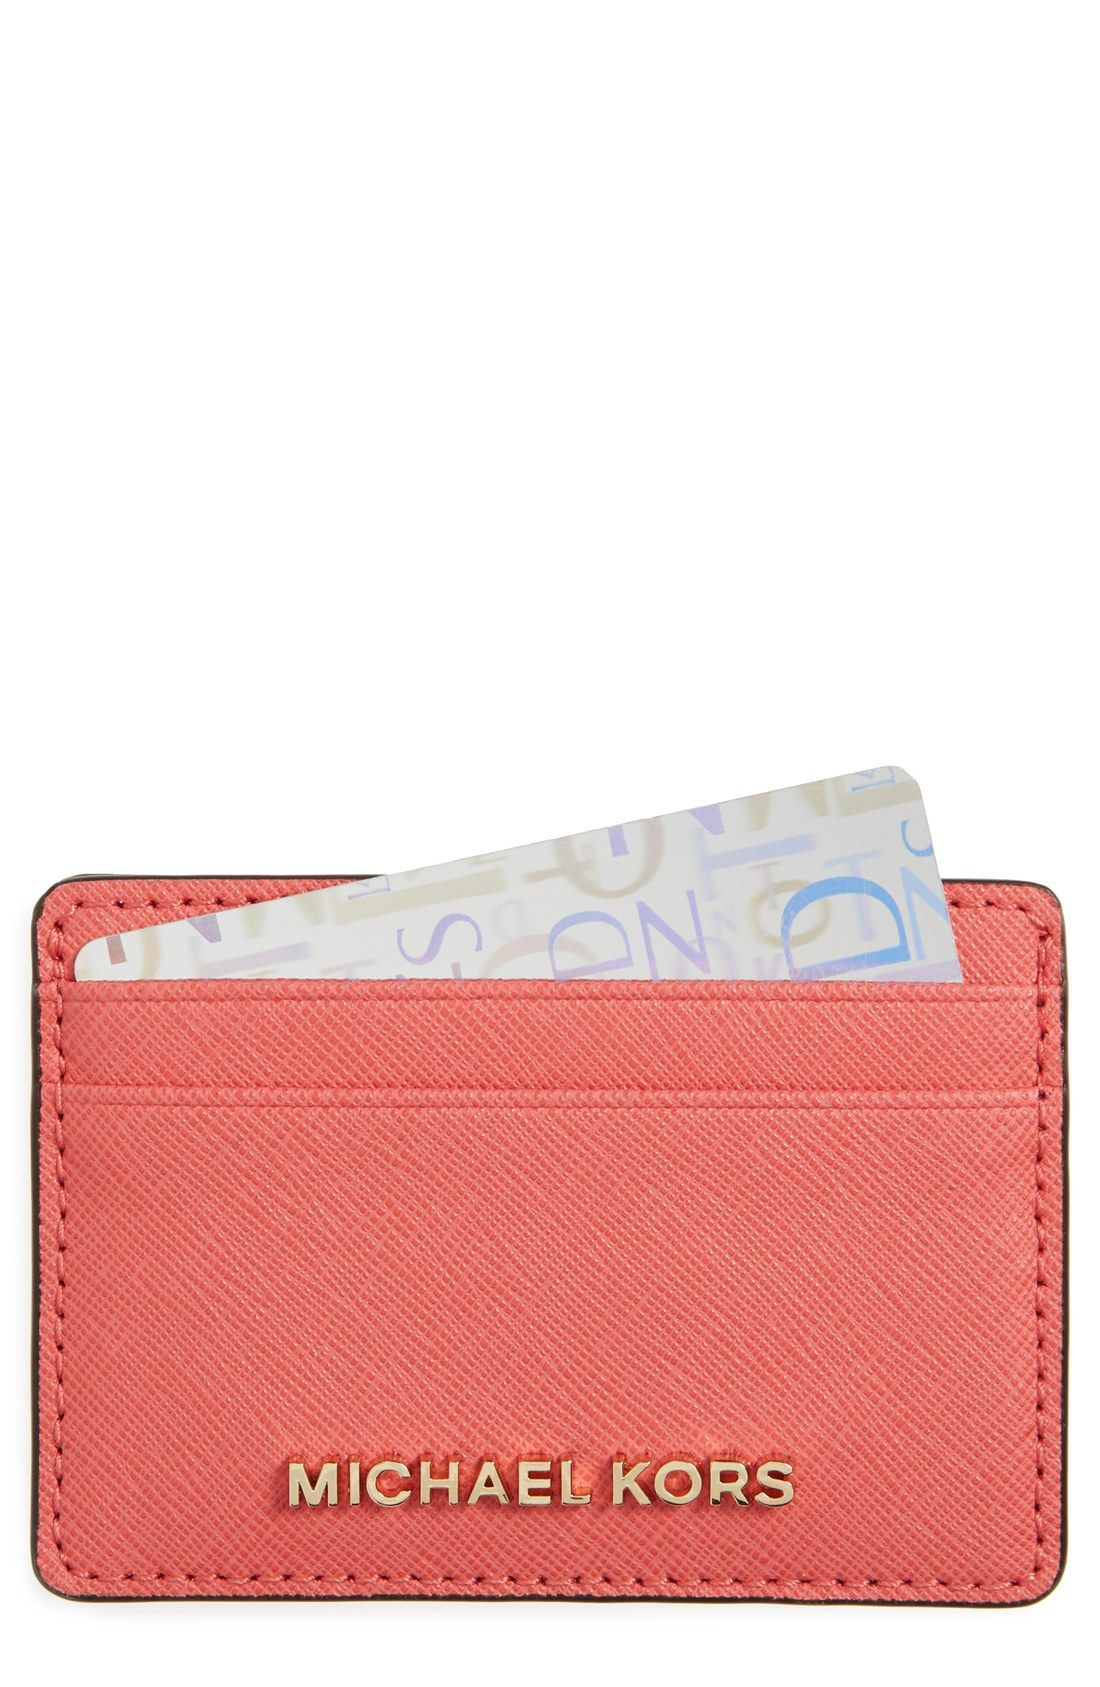 8e60660fa7 Handbags   Wallets for Women. In love with this Michael Kors card holder in  pink grapefruit and gold details.